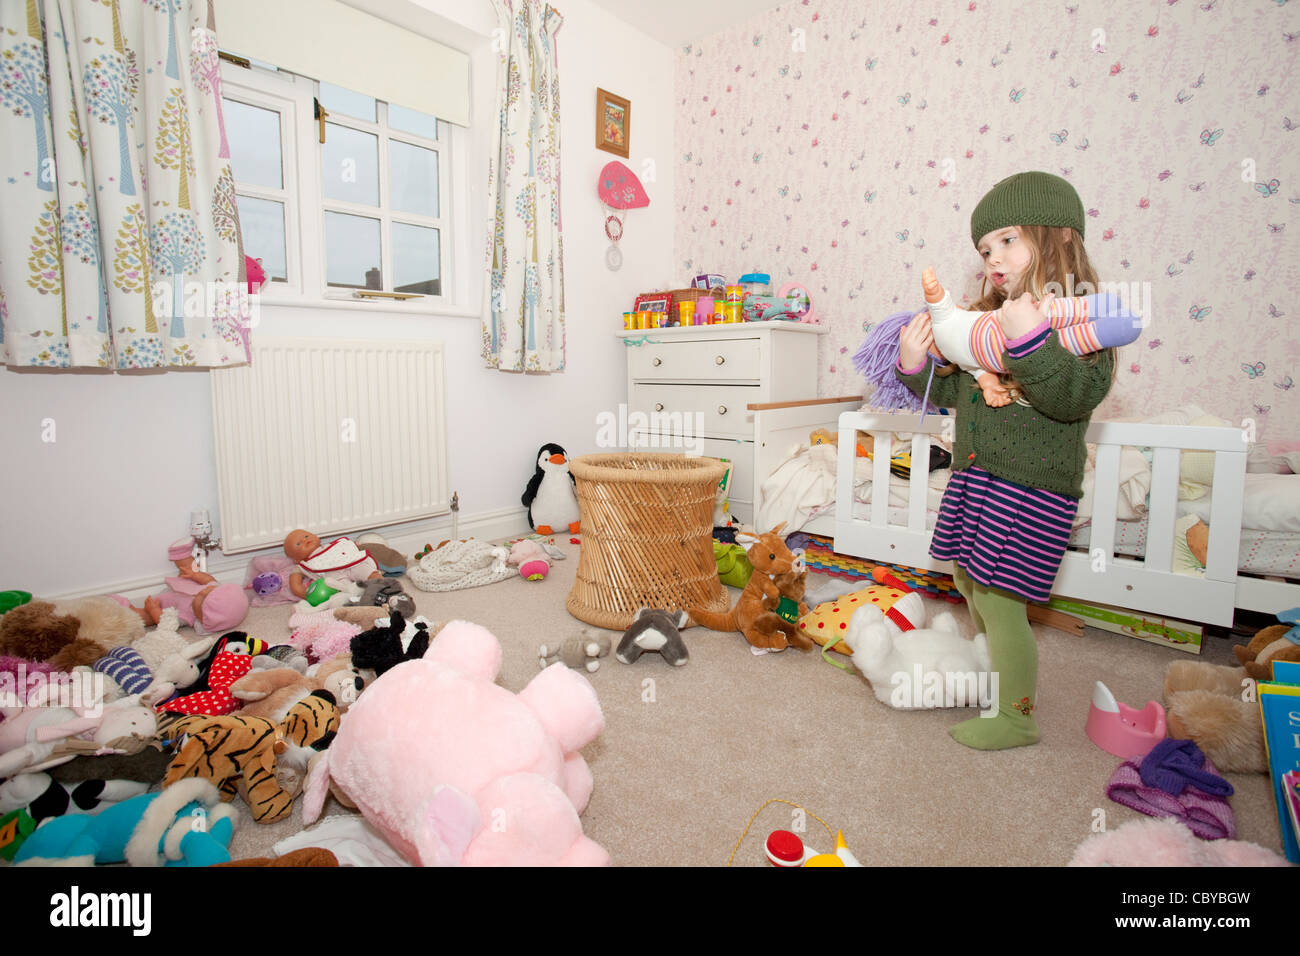 female toddler playing in her bedroom - Stock Image